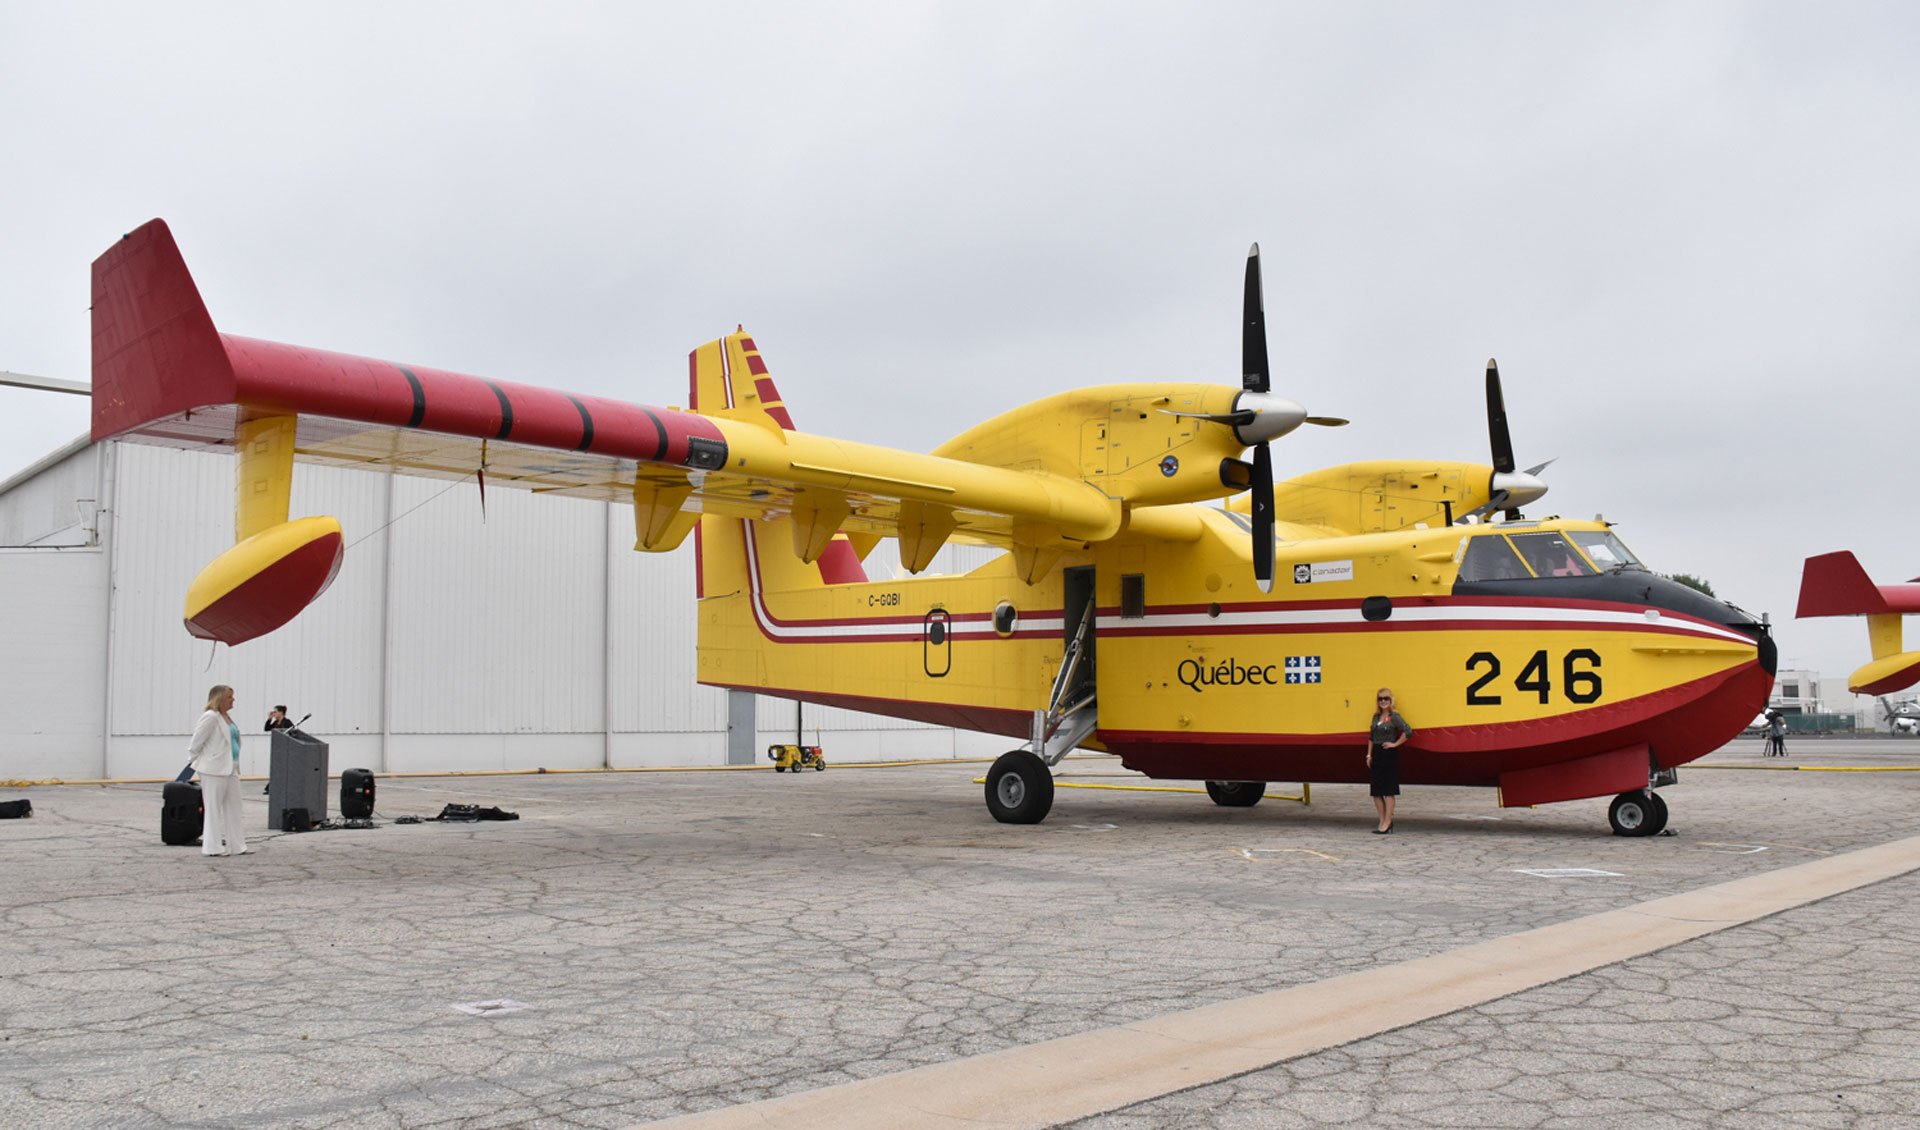 The L.A. County Fire Department is leasing firefighting aircraft like this Super Scooper from the Government of Quebec.